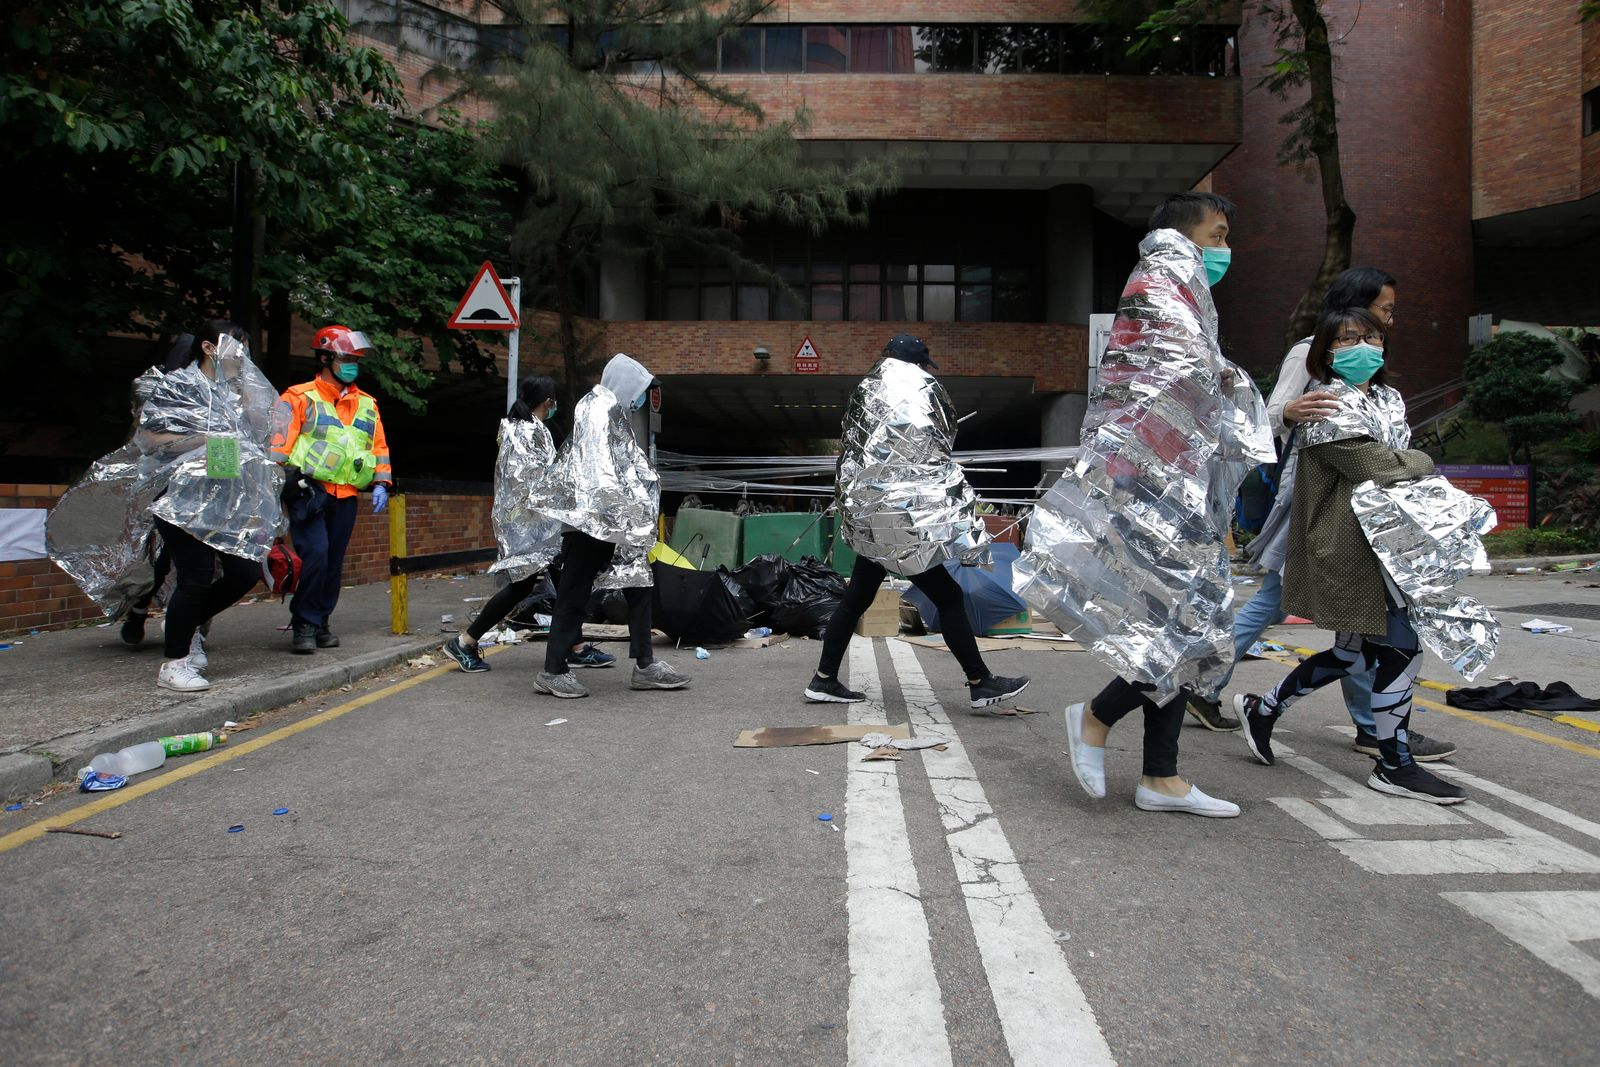 Injured protesters wrapped in blankets, walk through the campus of the Hong Kong Polytechnic University in Hong Kong, Tuesday, Nov. 19, 2019.{ } (AP Photo/Achmad Ibrahim)